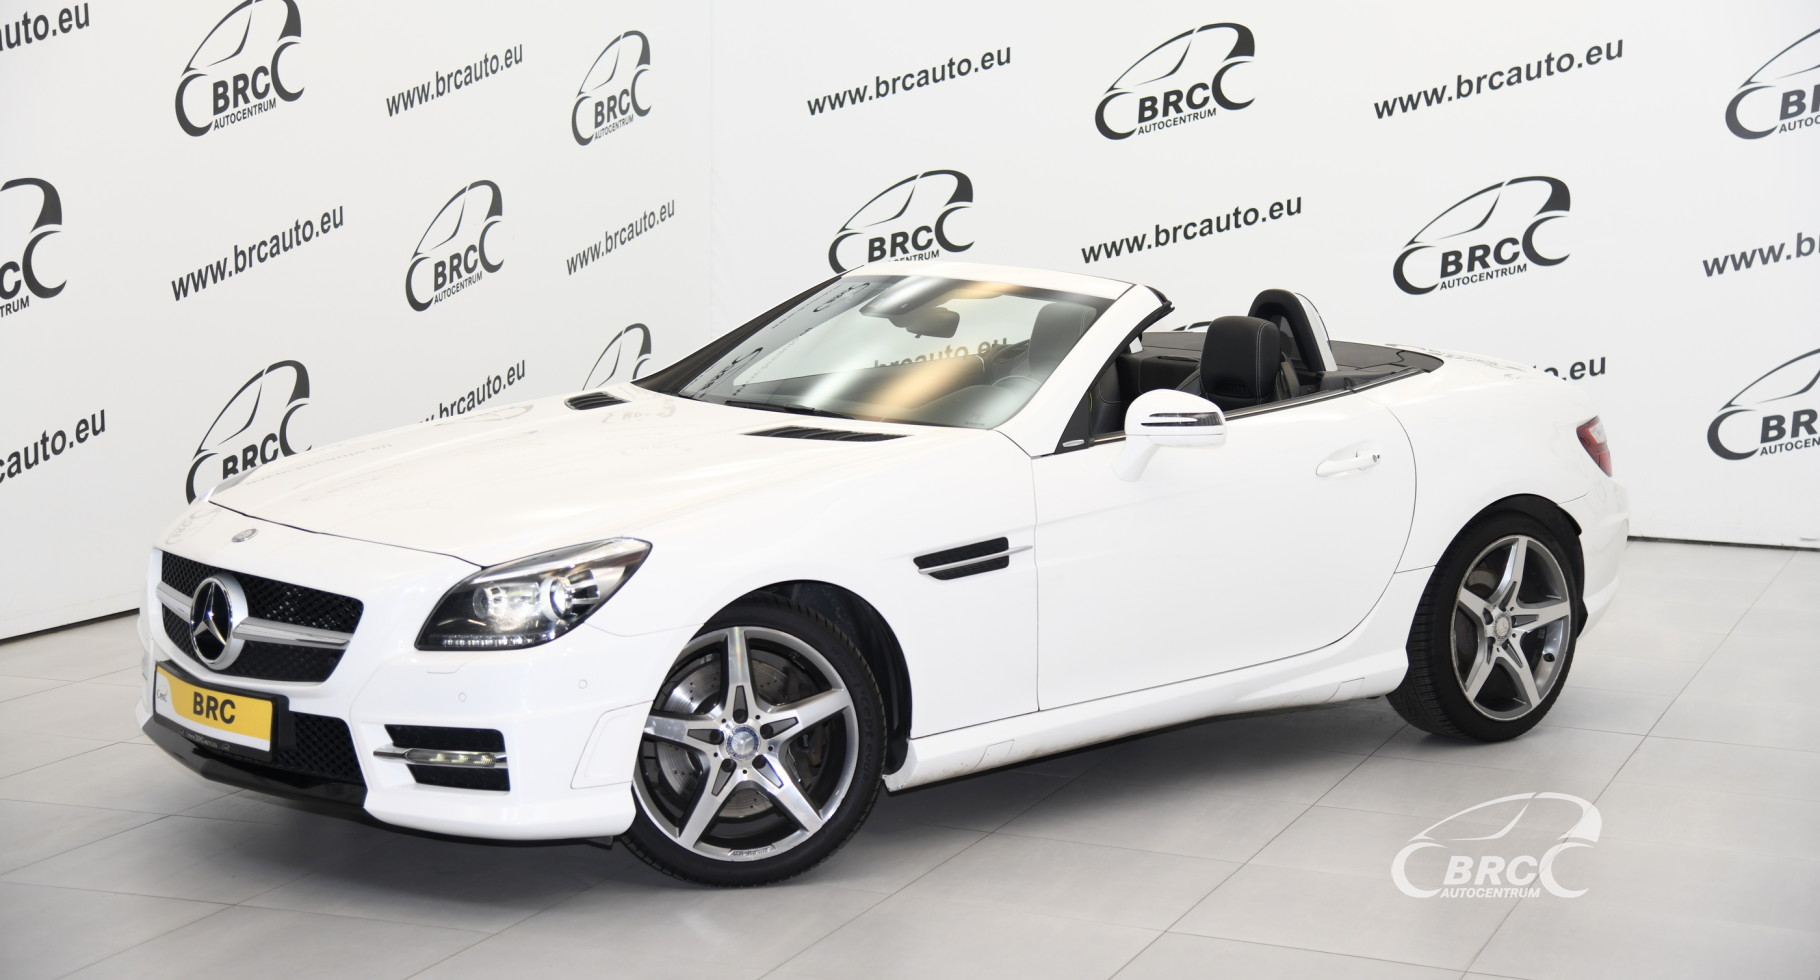 Mercedes-Benz SLK 250 CDI BlueEfficiency Carbon Look Edition Roadster Au